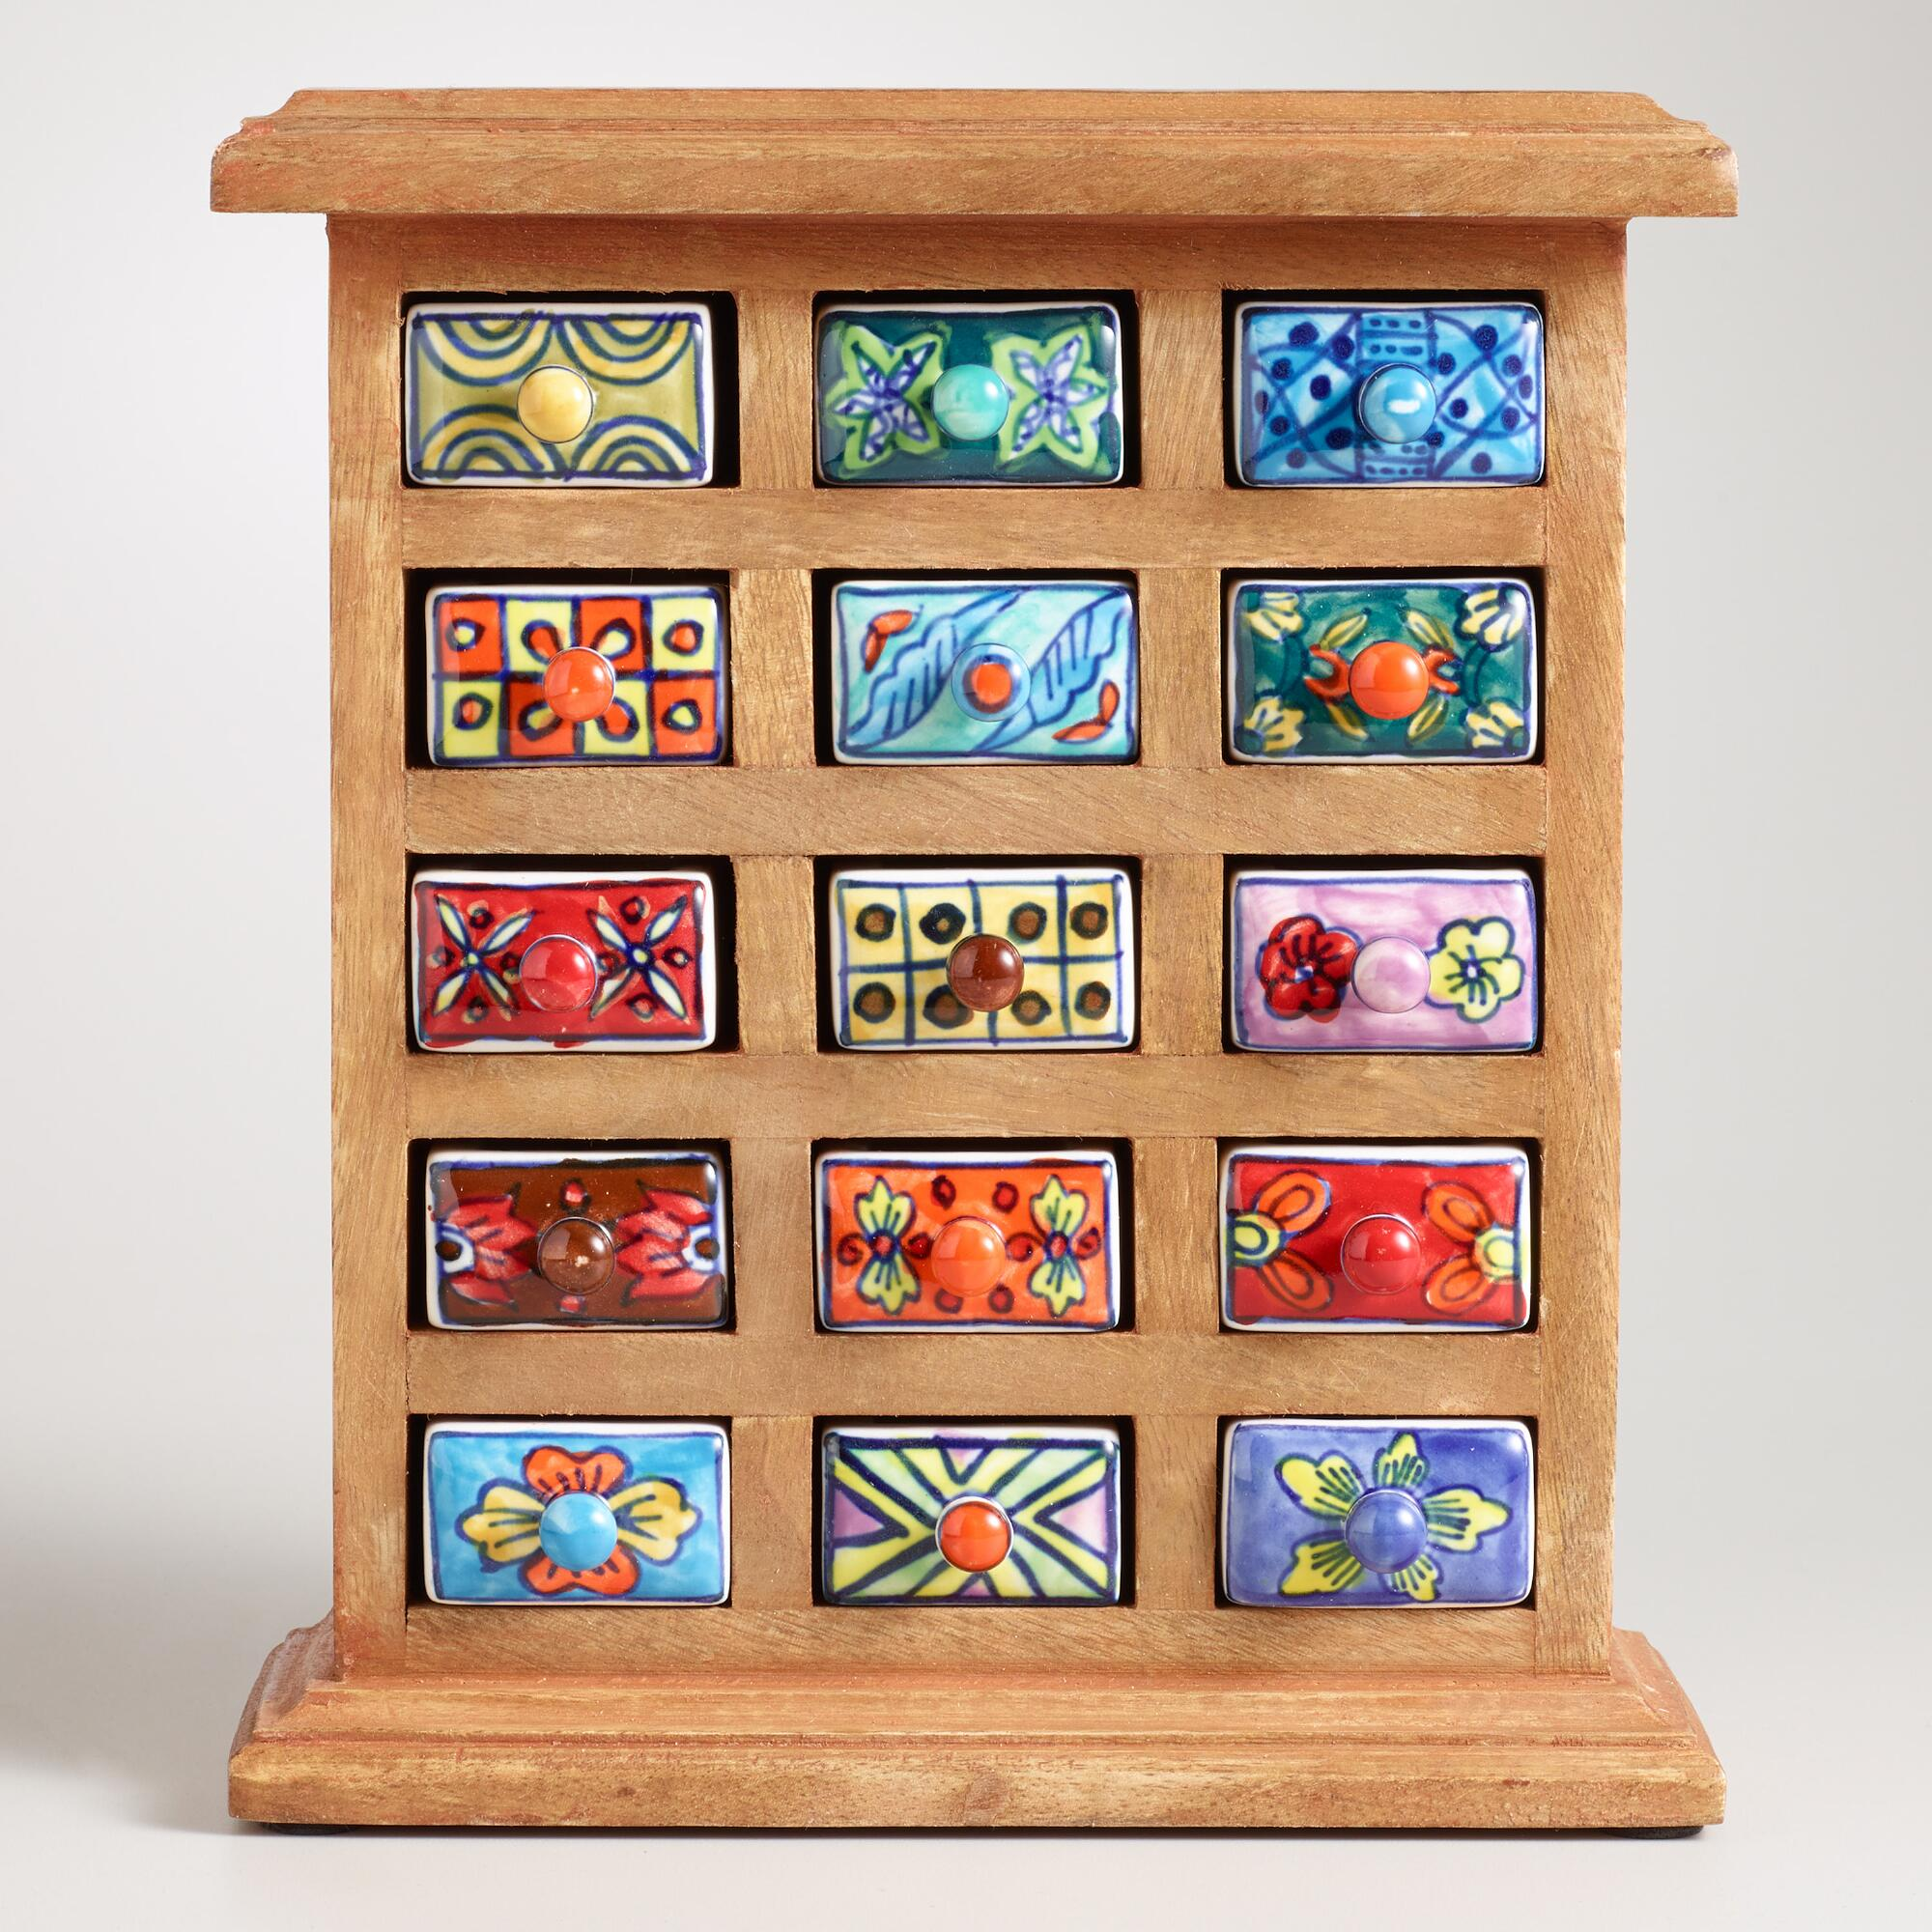 Marvelous photograph of Handmade Ceramic Drawer Wood Chest World Market with #A82B23 color and 2000x2000 pixels